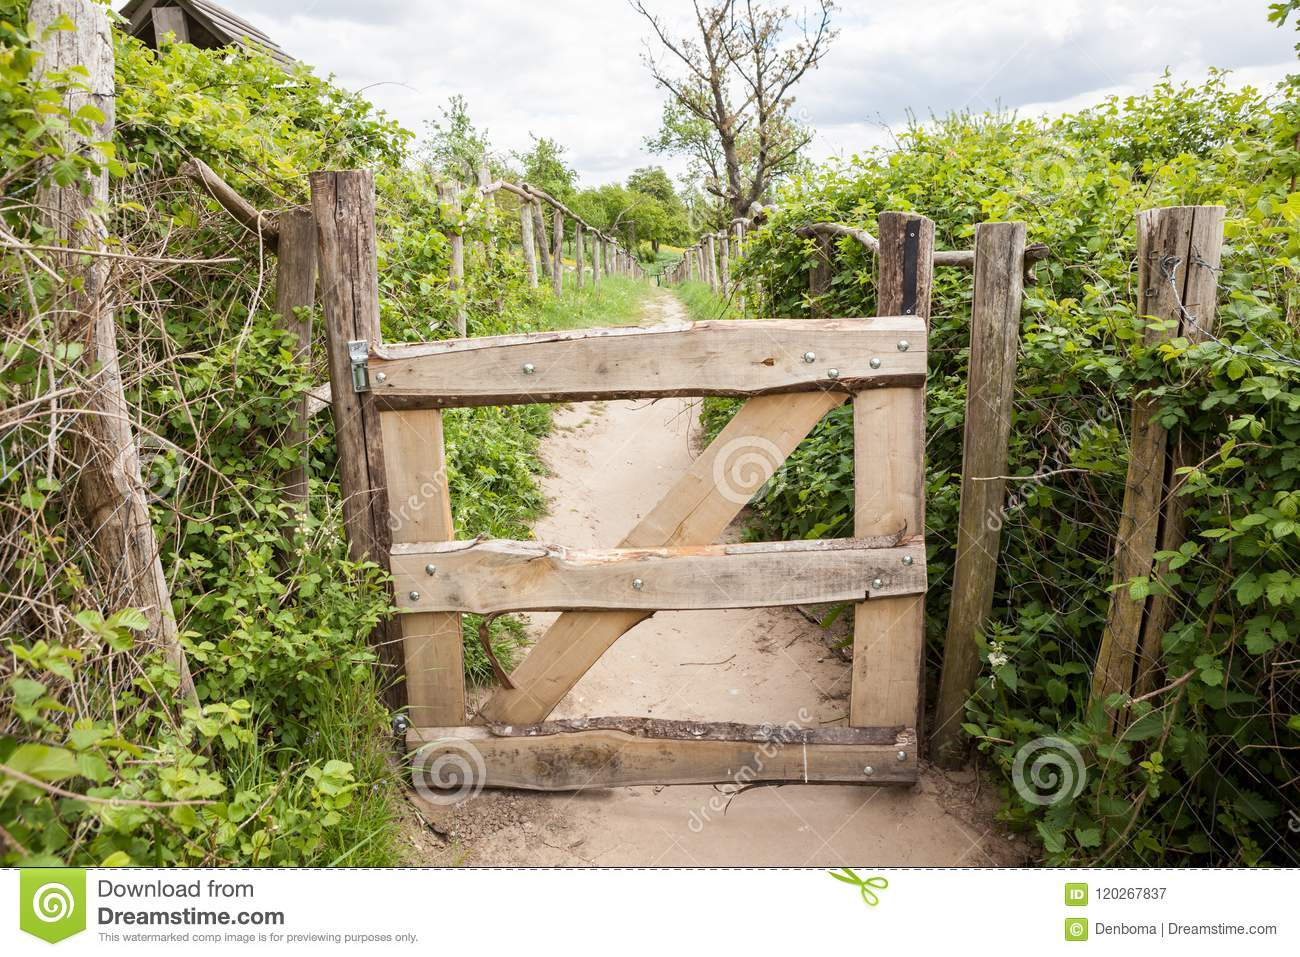 An wooden fence